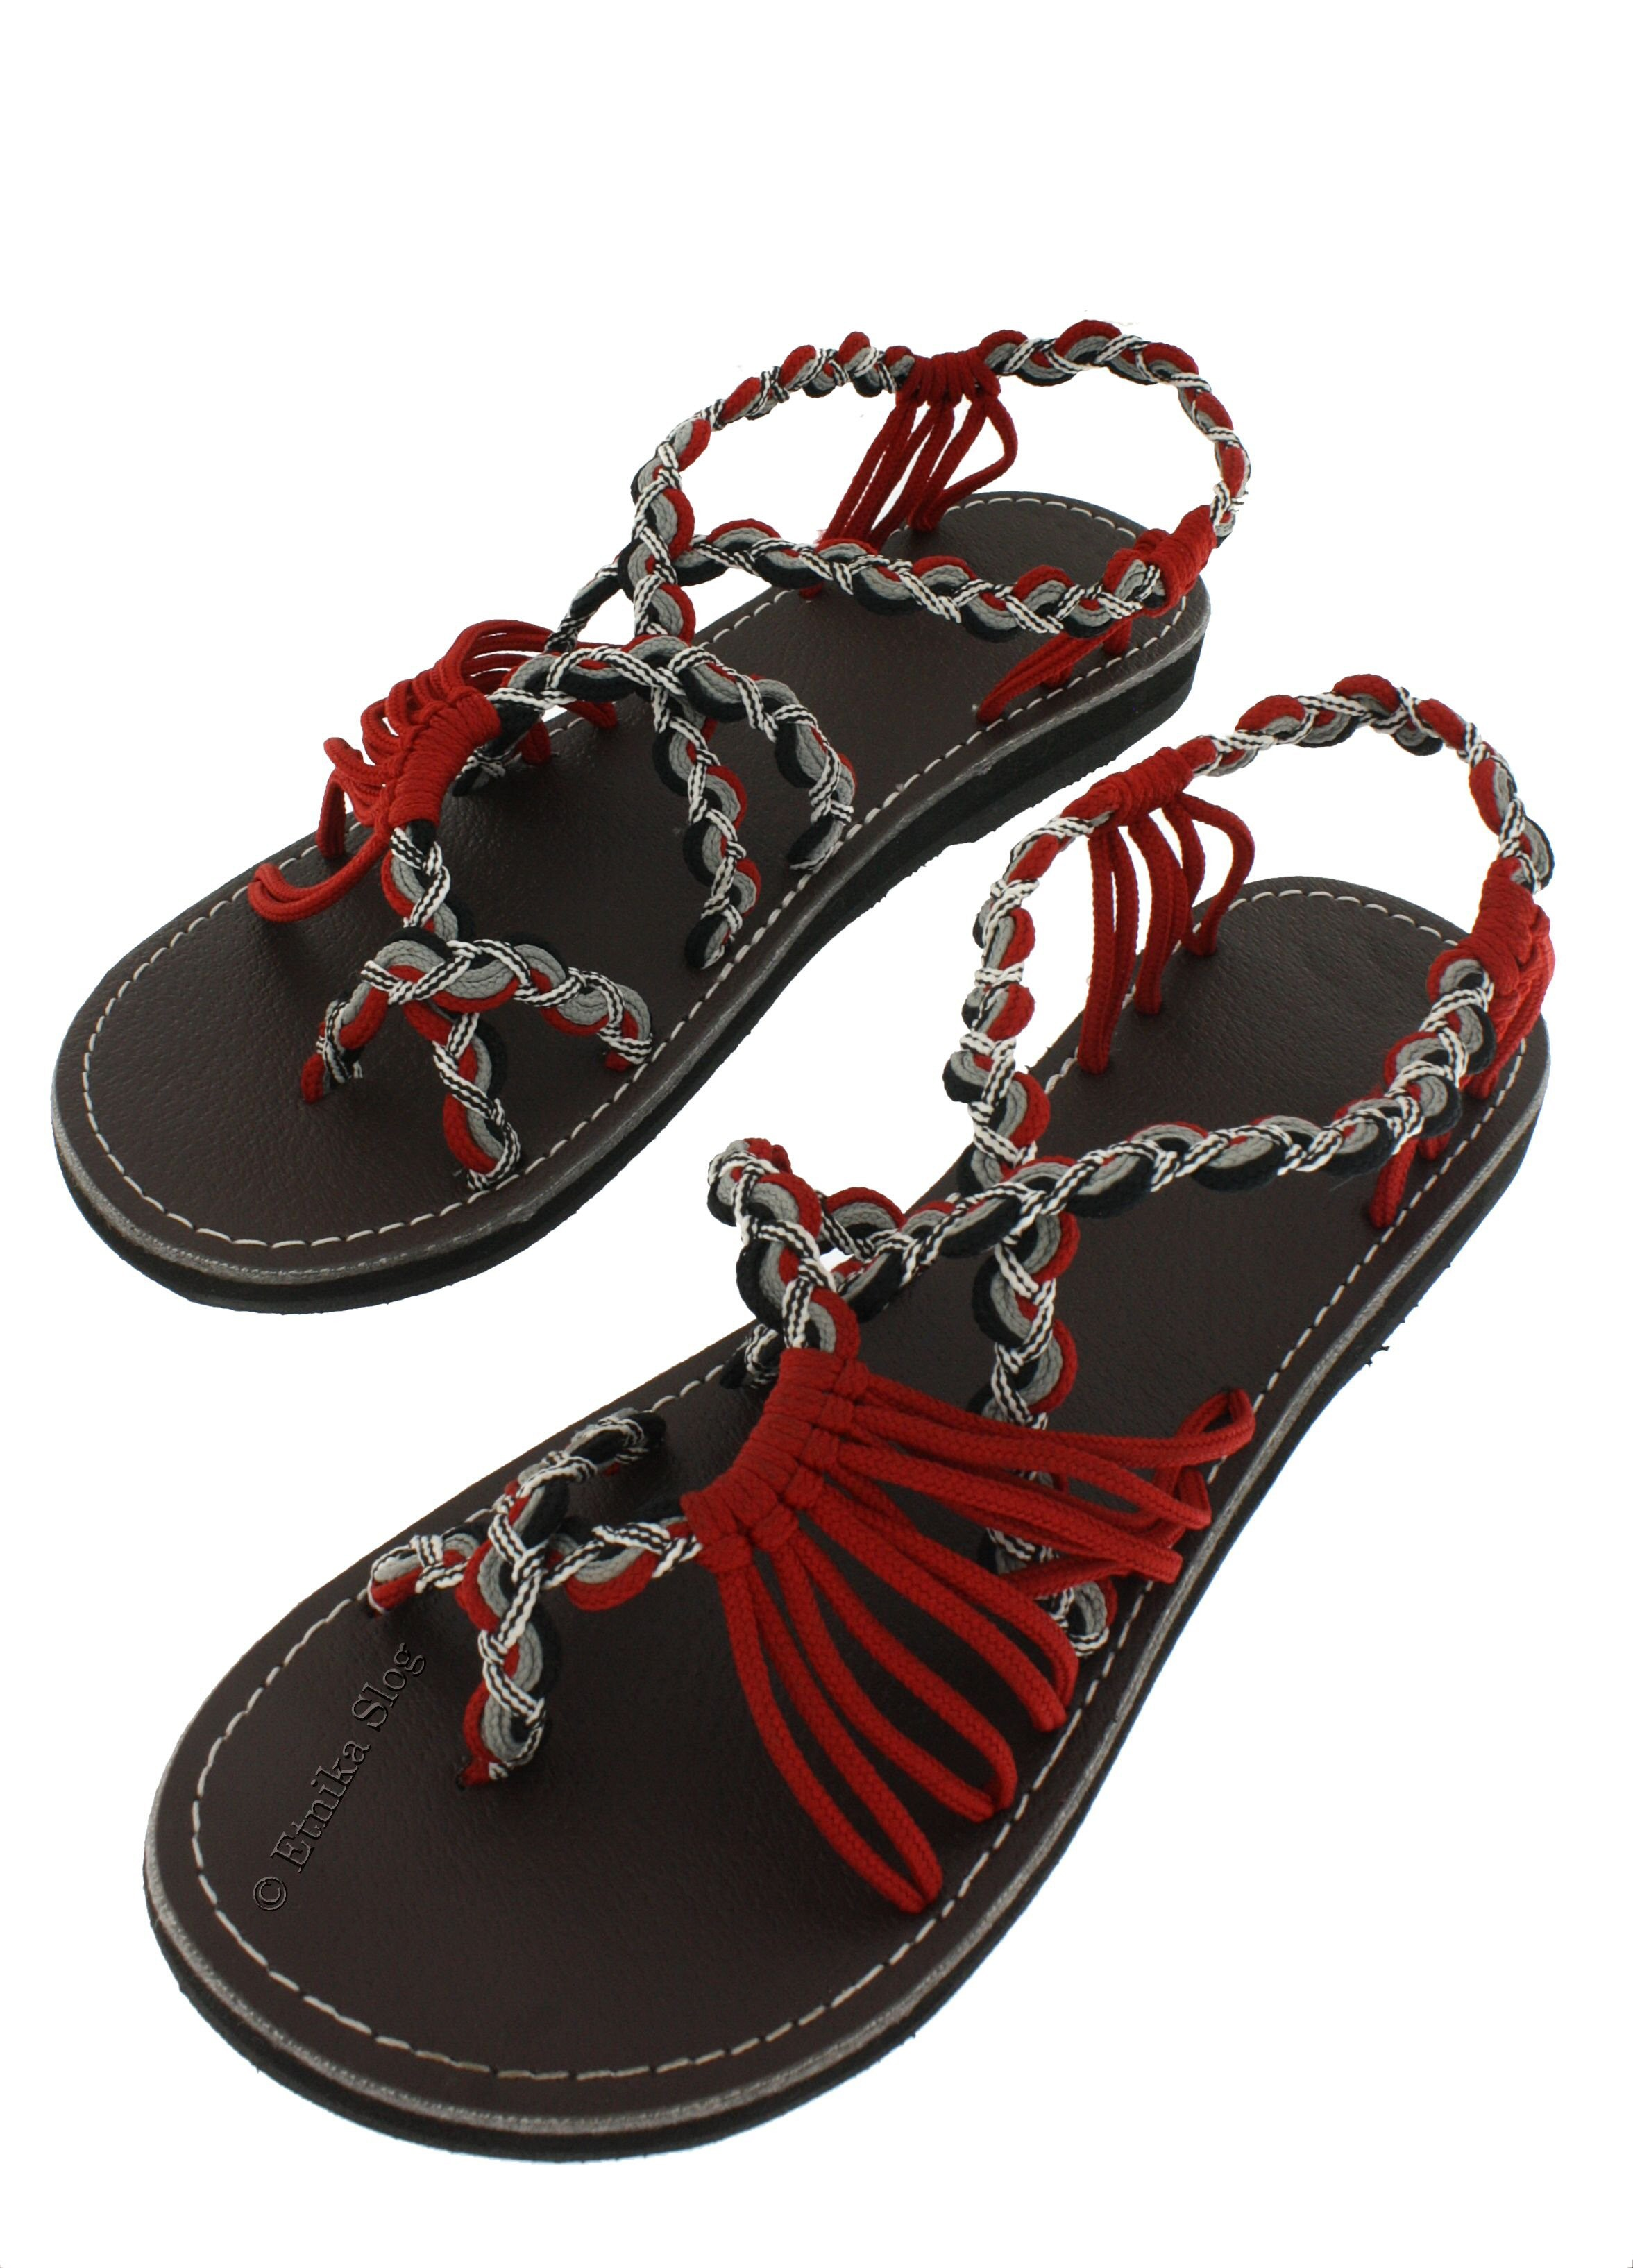 SANDALS IN LEATHER SN-AP05-RG - Etnika Slog d.o.o.